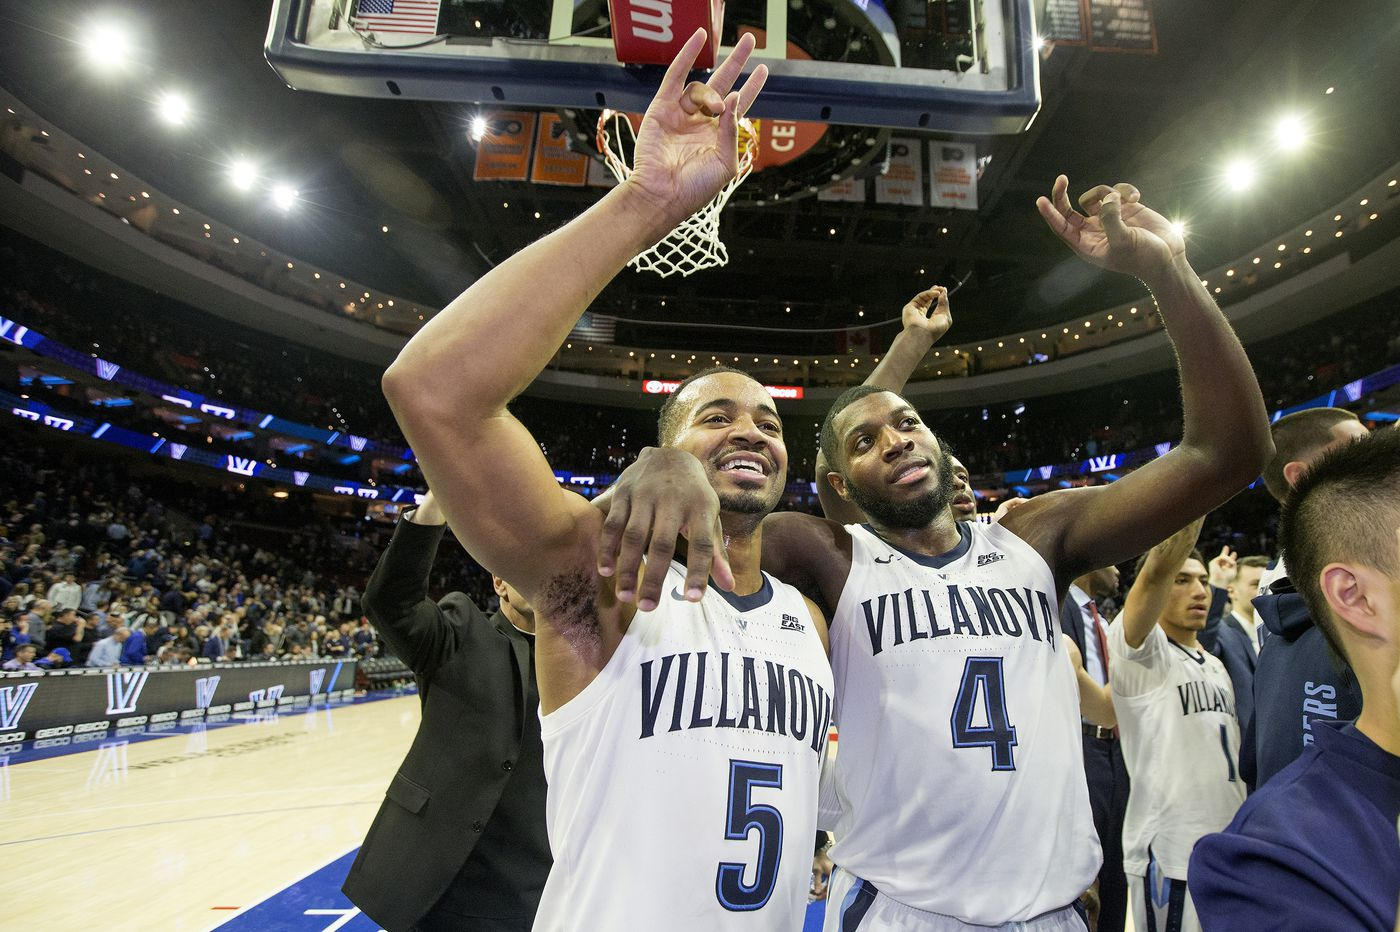 Villanova standouts Eric Paschall, Phil Booth to showcase skills for Sixers on Saturday